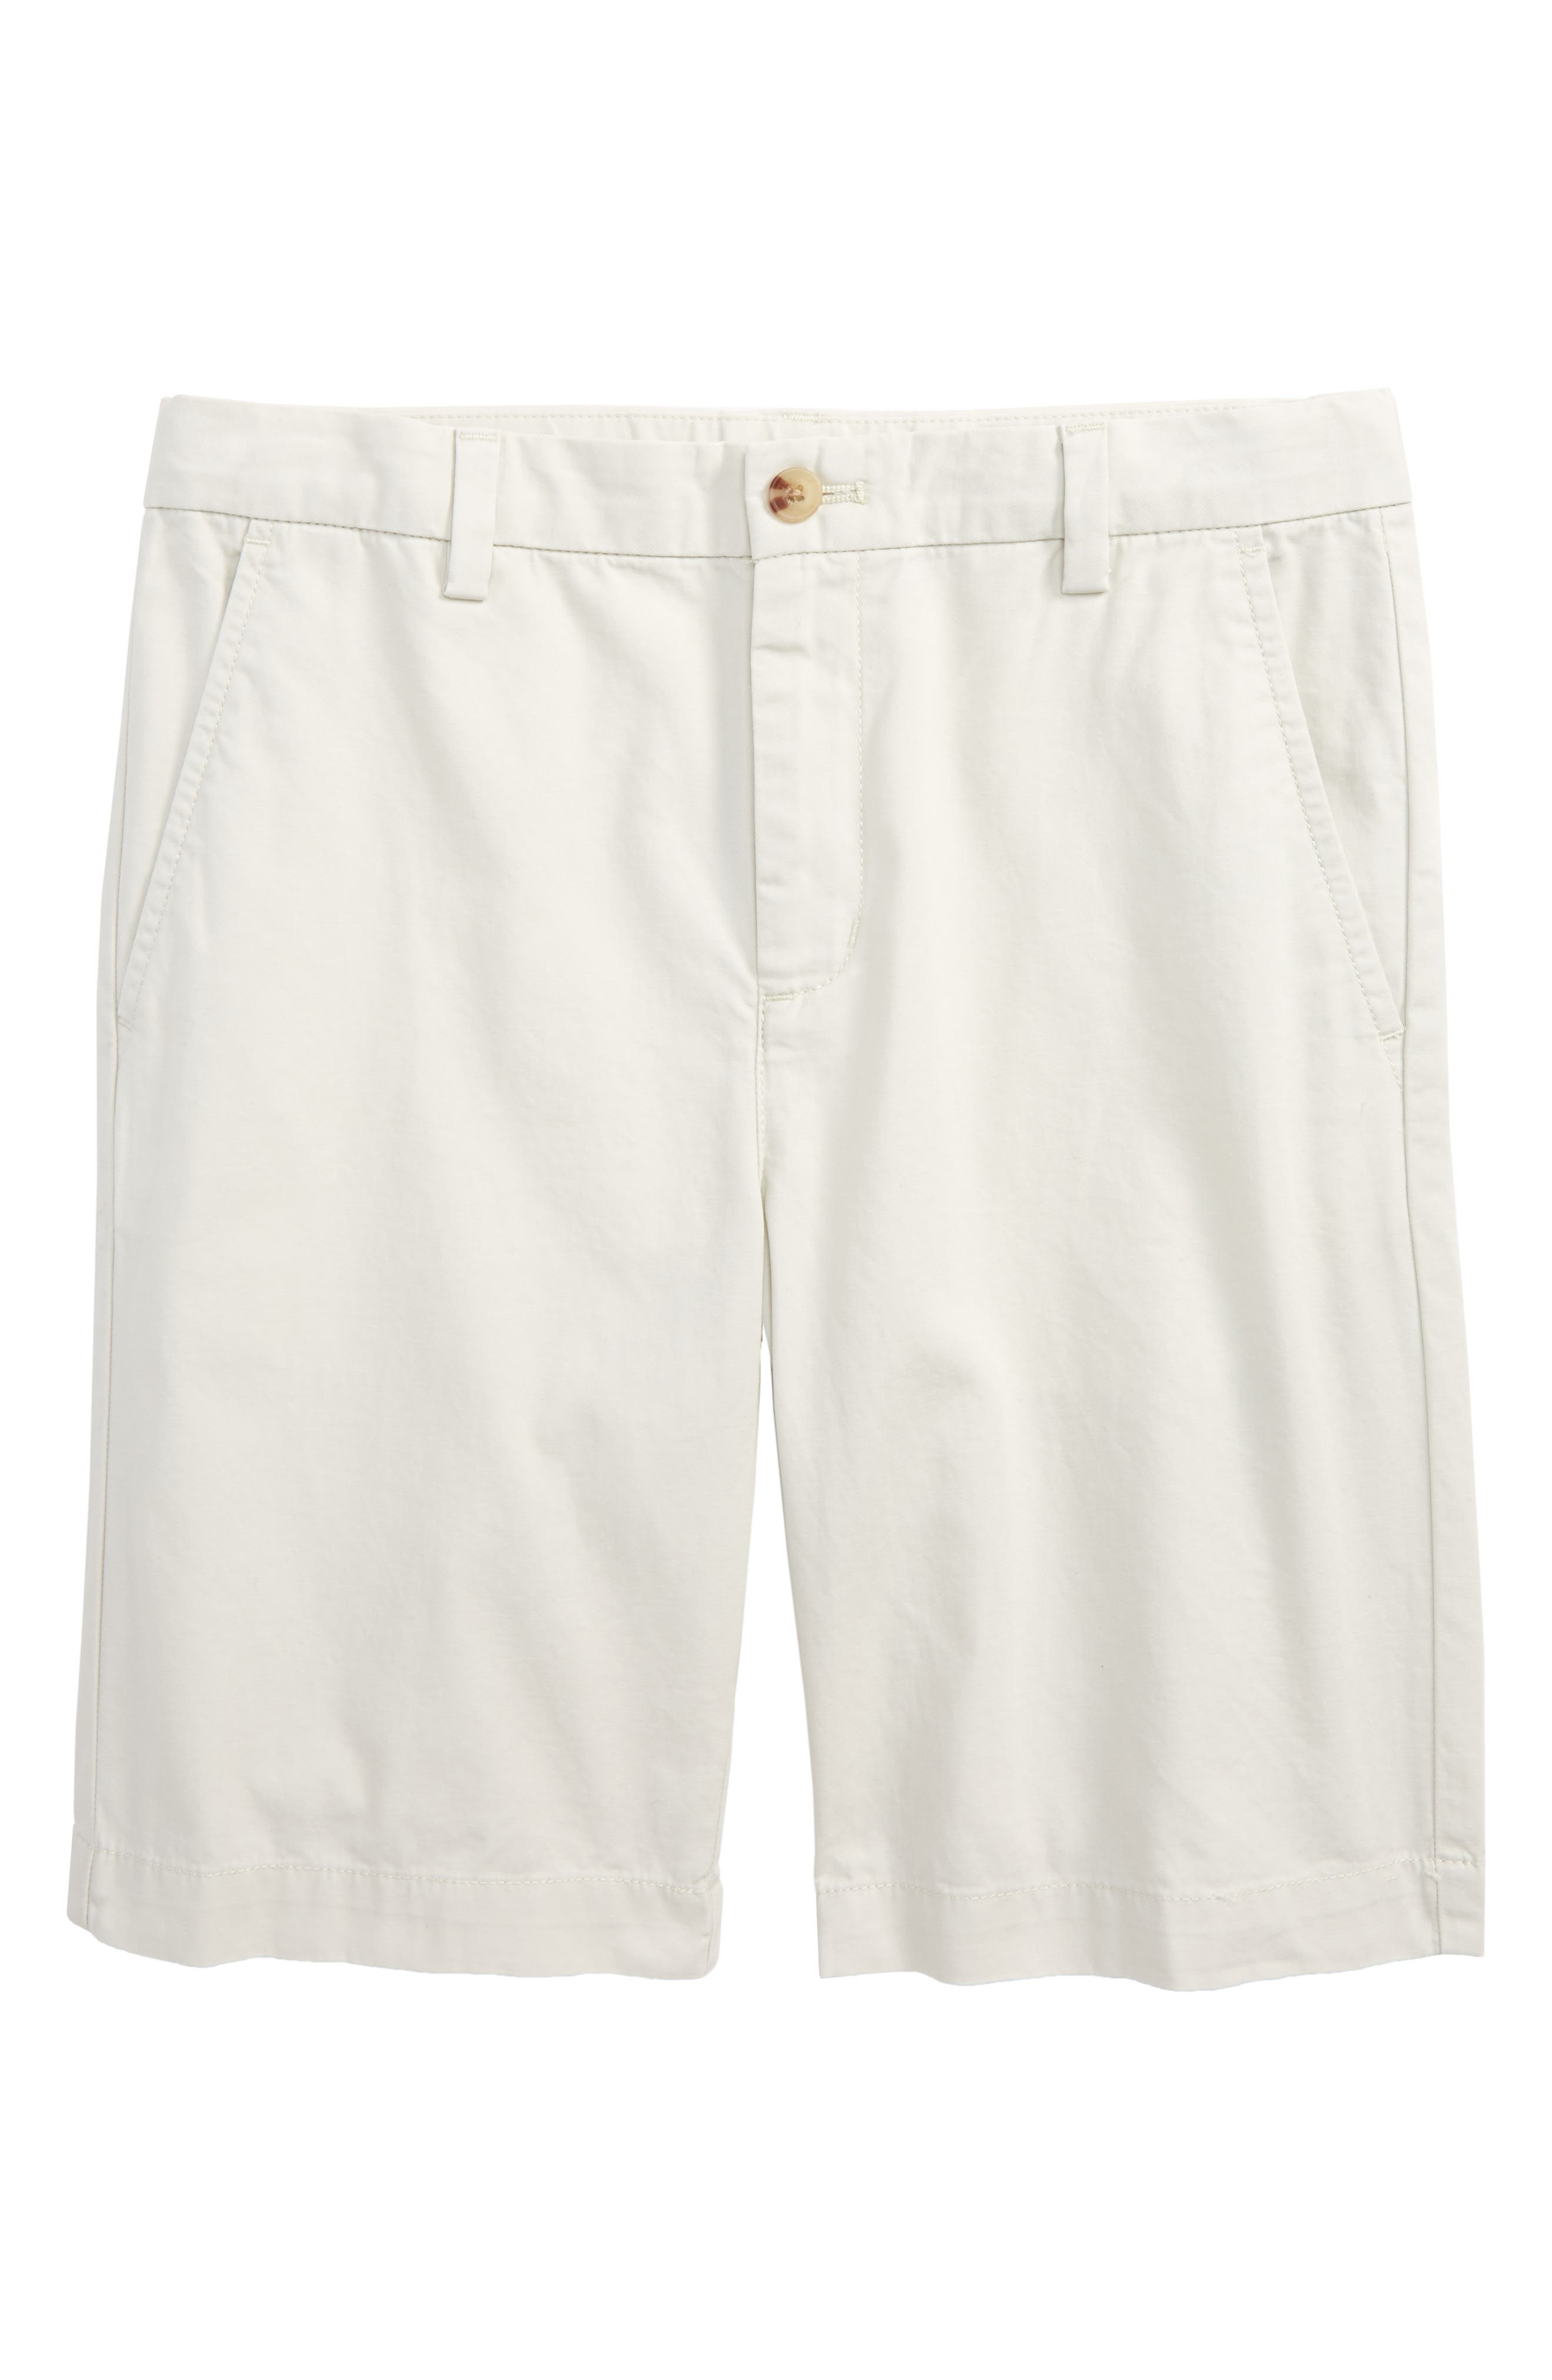 Summer - Breaker Twill Shorts,                             Main thumbnail 1, color,